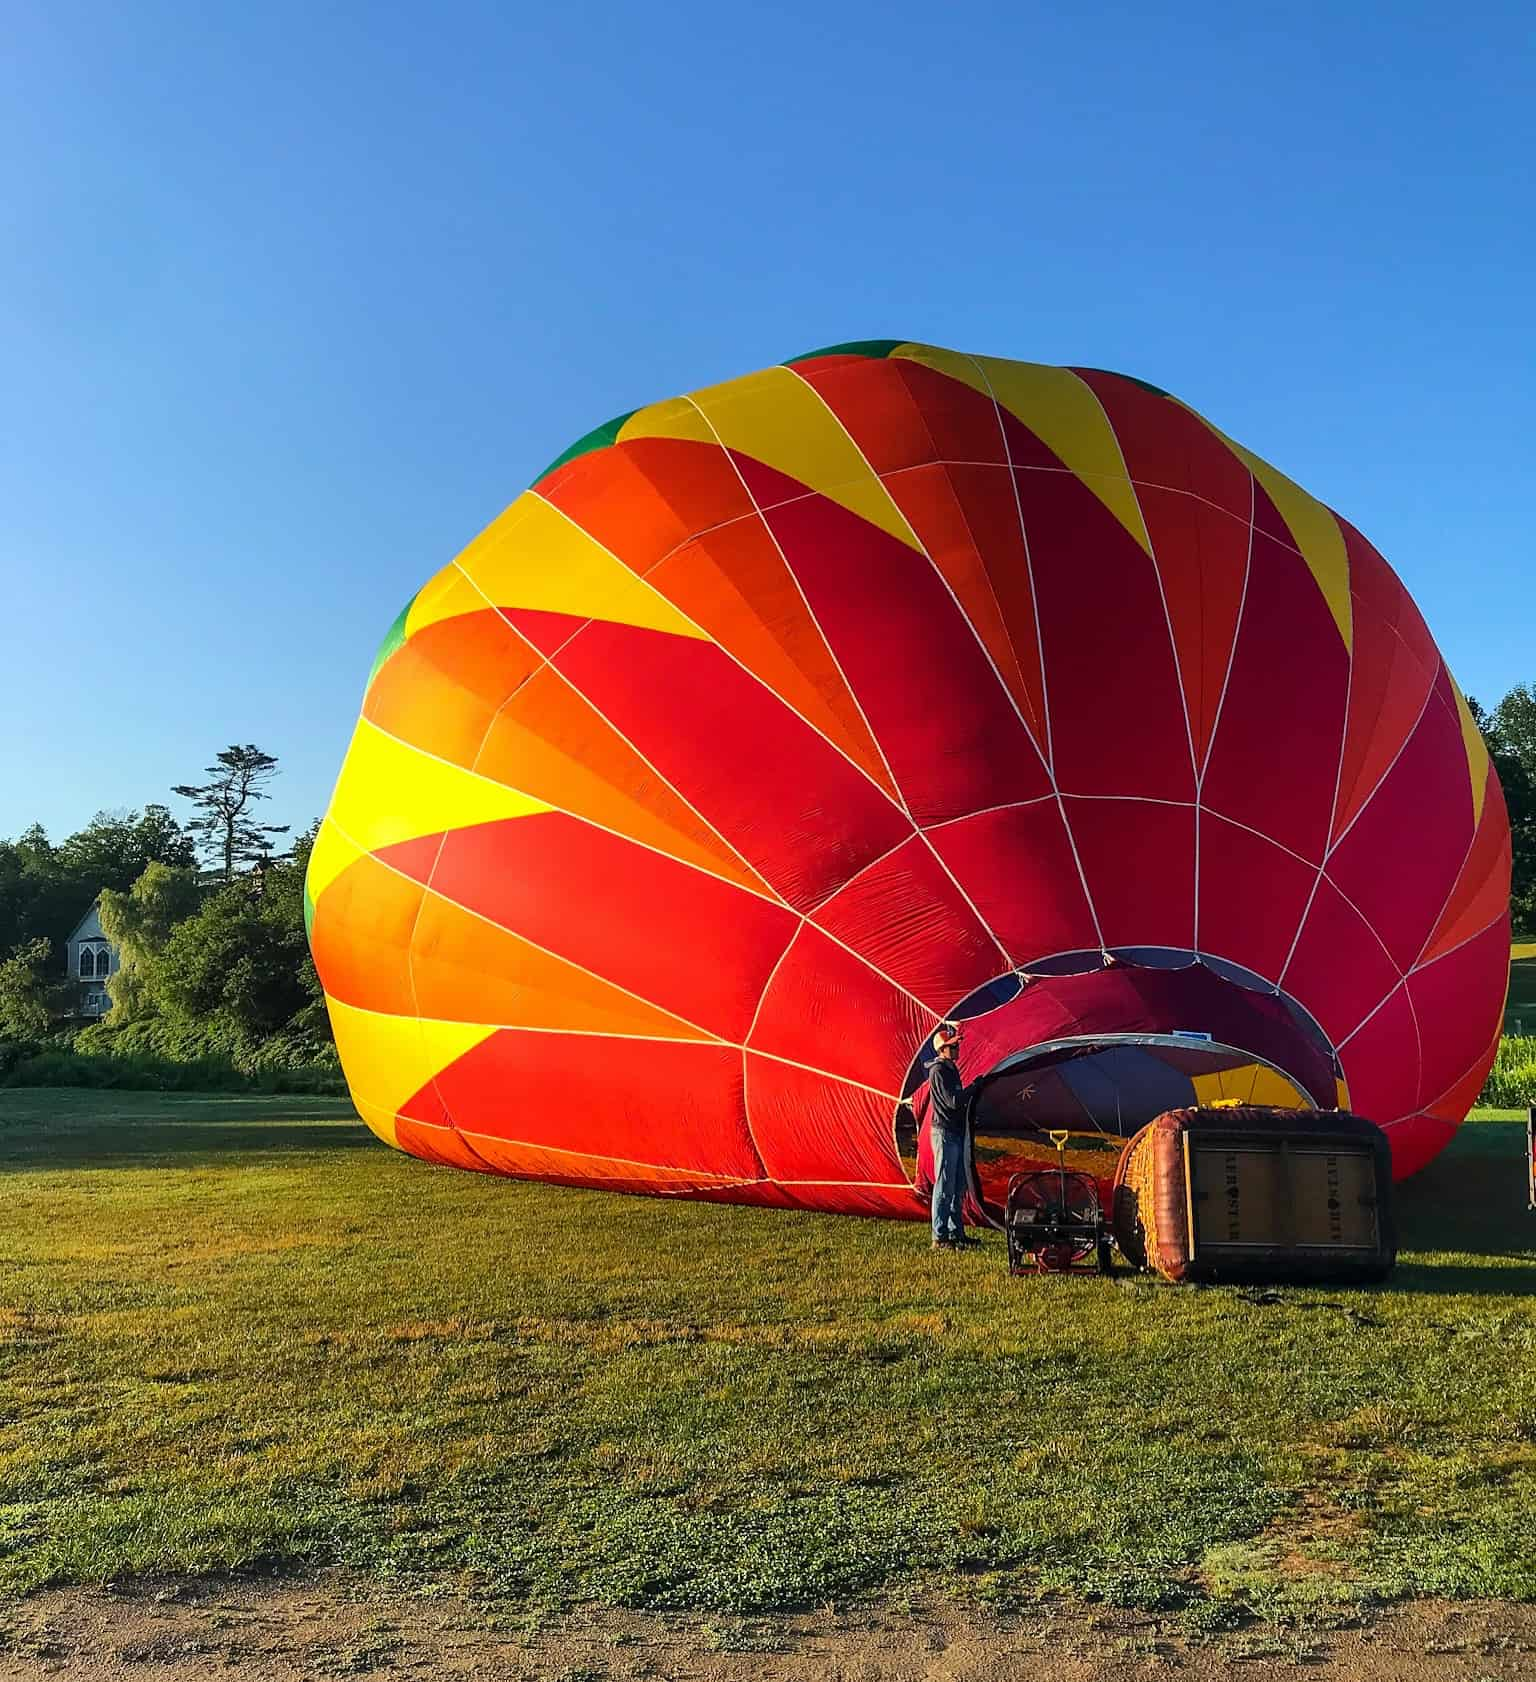 Hot Air Balloon in Quechee, VT